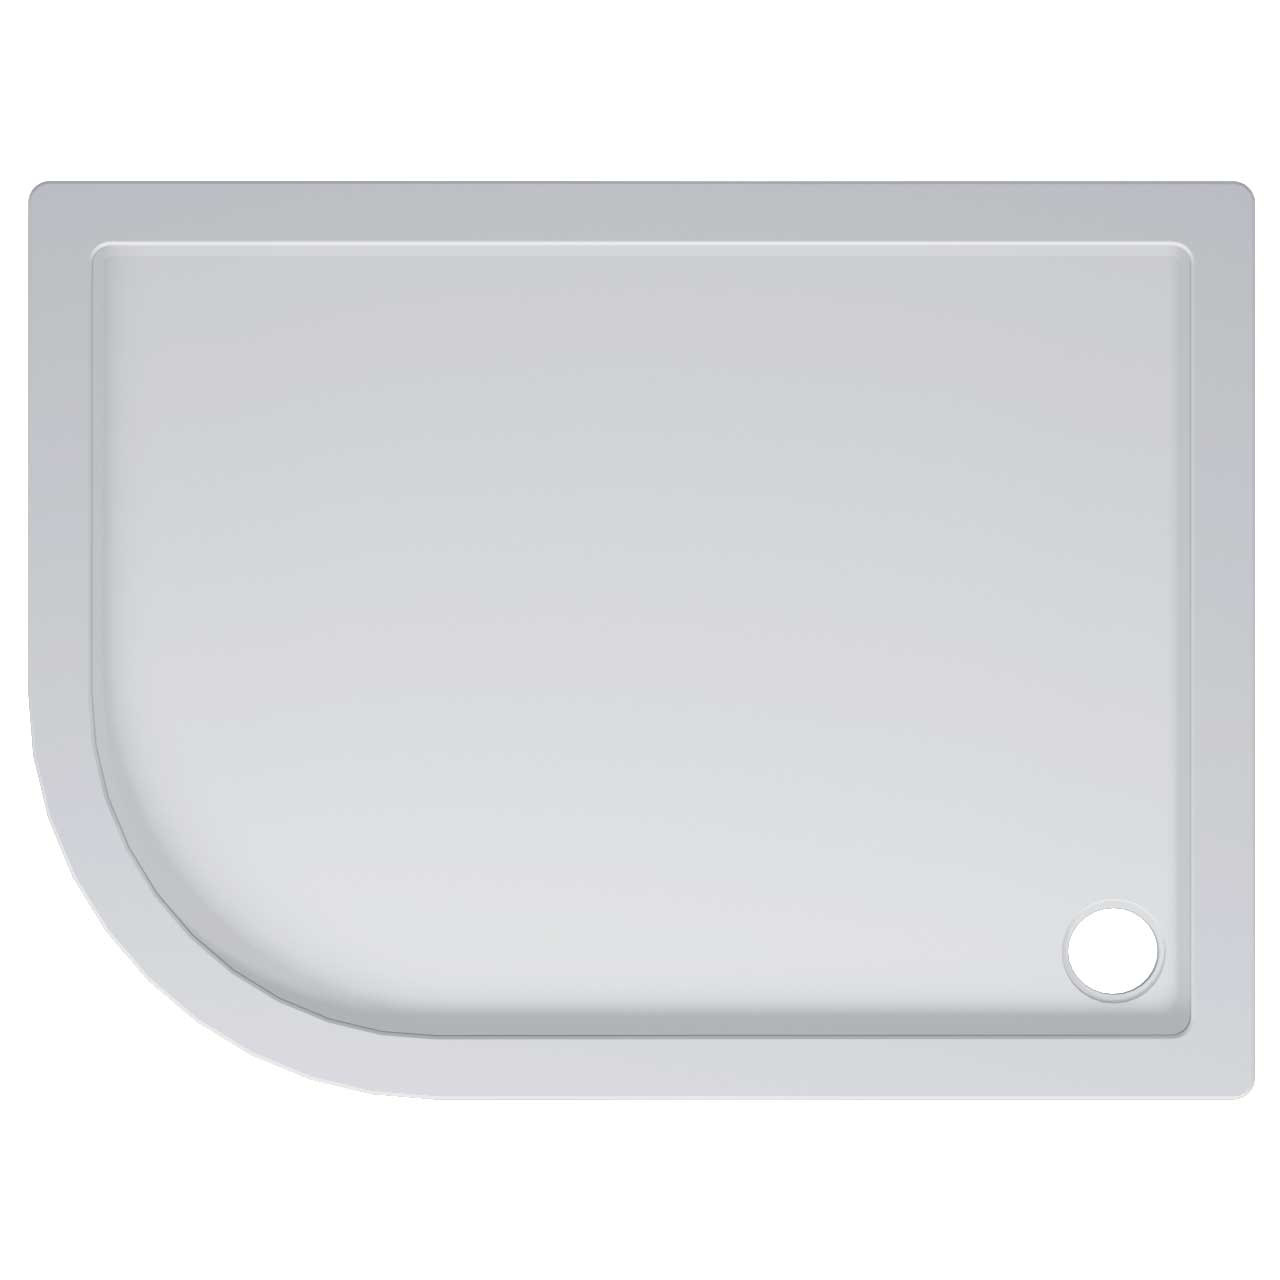 40mm Pearlstone 1200 x 900 Left Hand Offset Quadrant Shower Tray & Plinth Top View